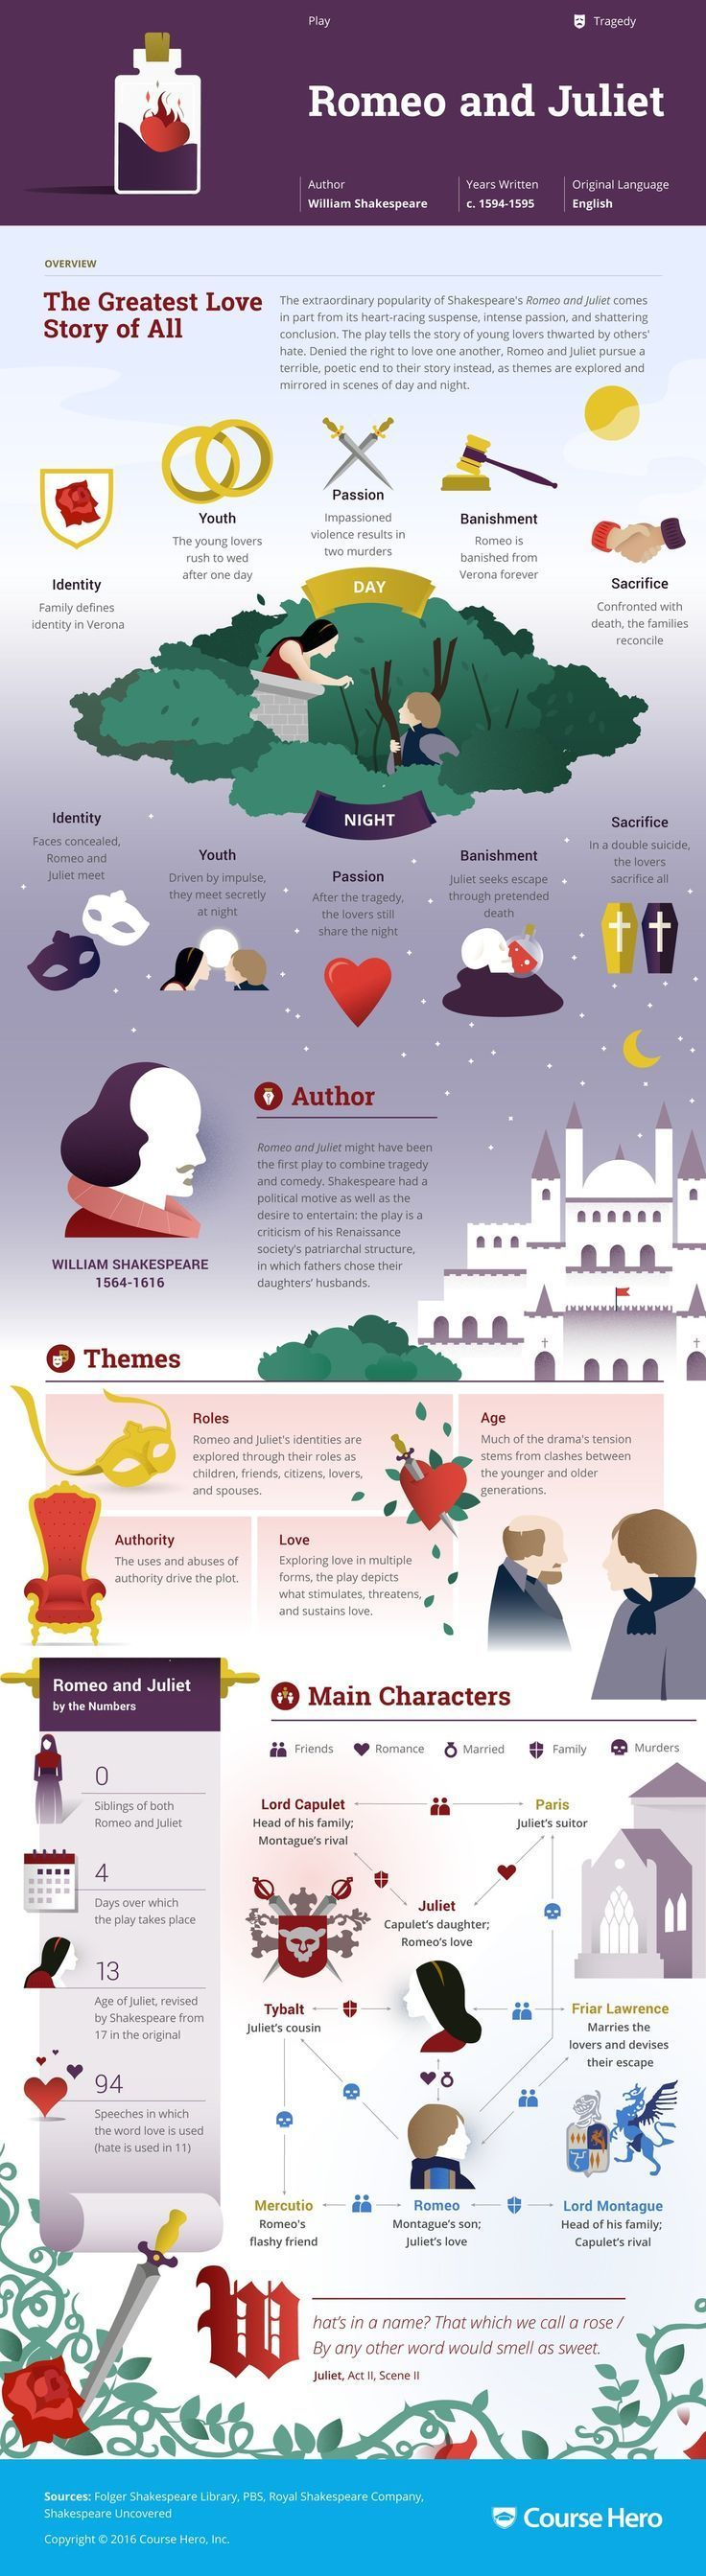 42 best Shakespeare images on Pinterest